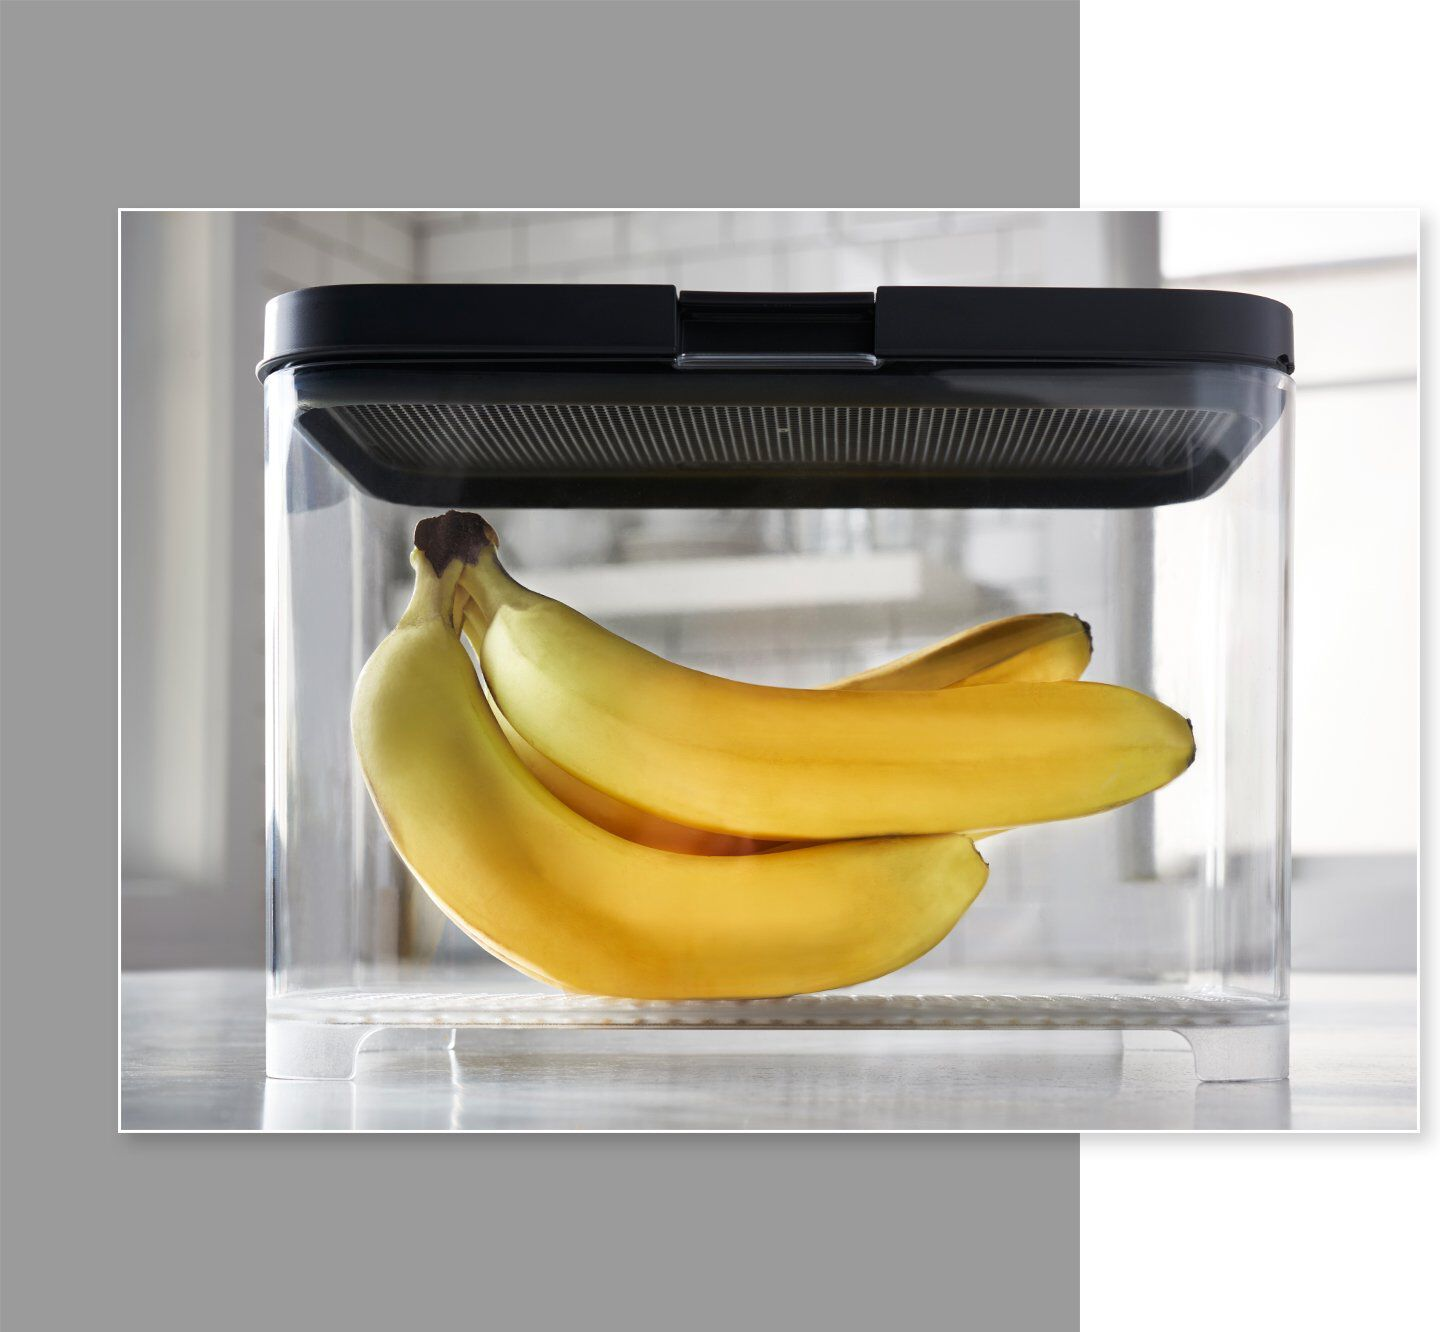 Rubbermaid FreshWorks countertop produce storage container bananas